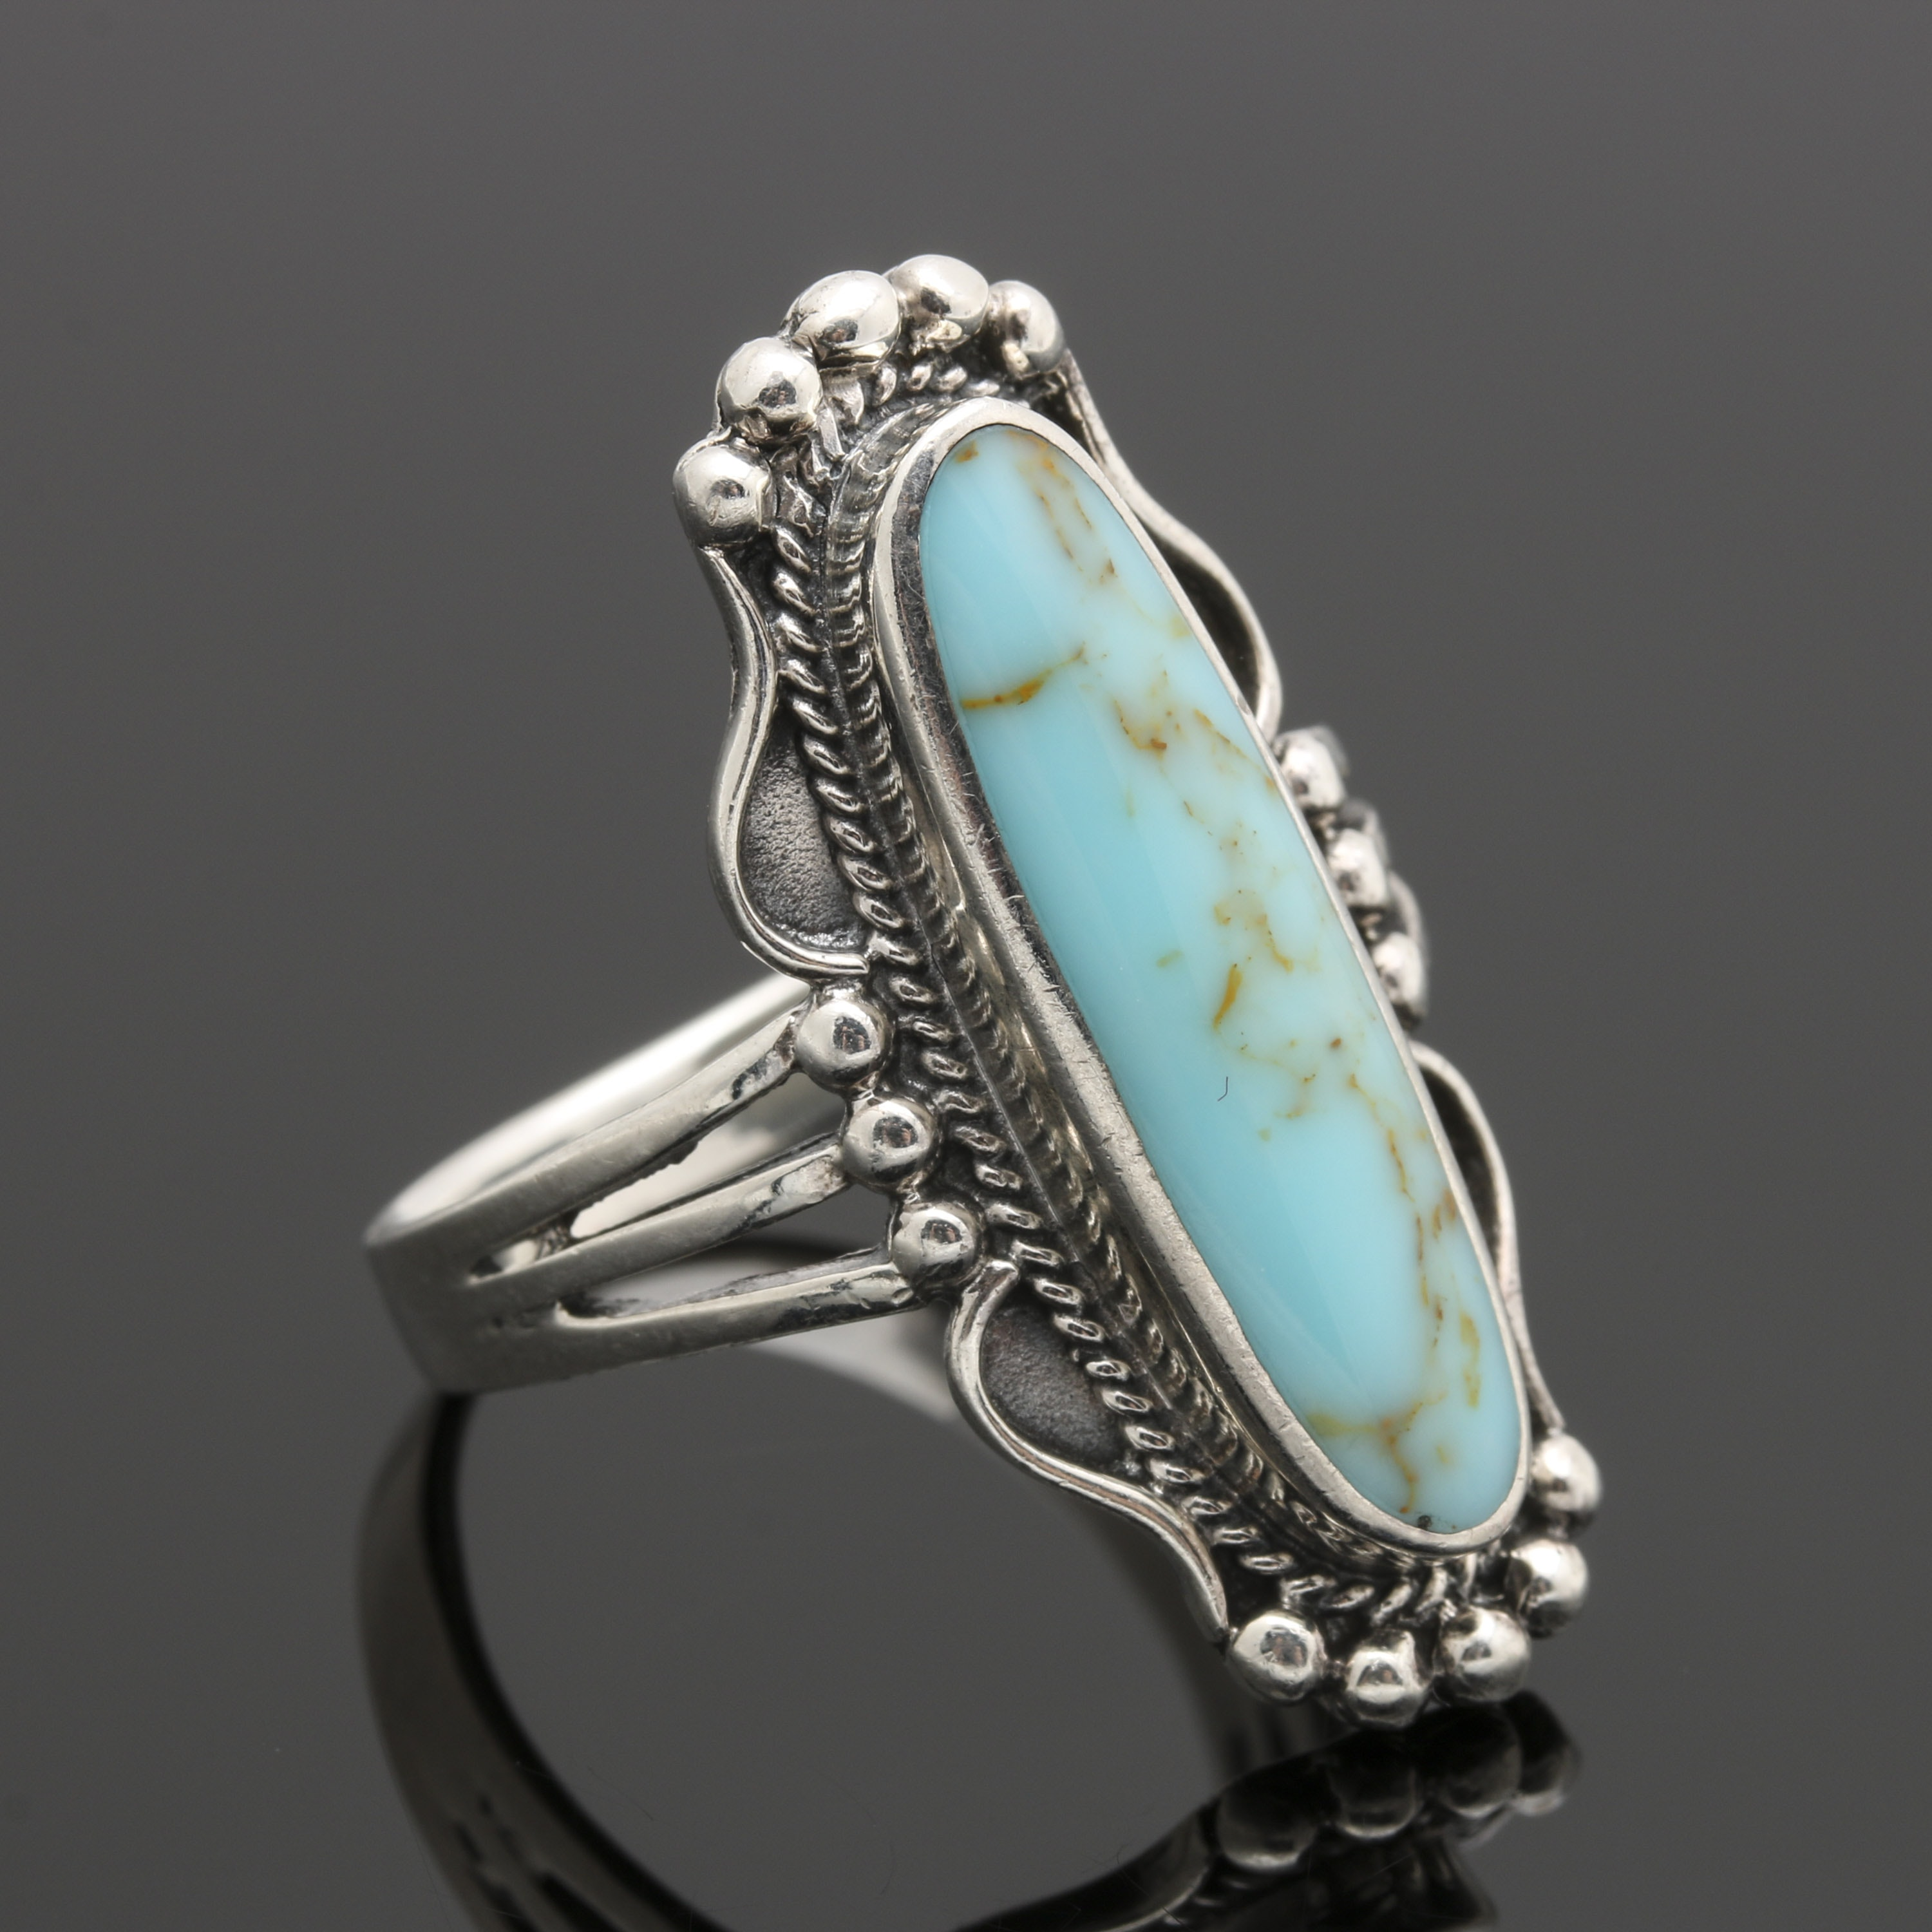 Southwestern Style Sterling Silver Imitation Turquoise Ring